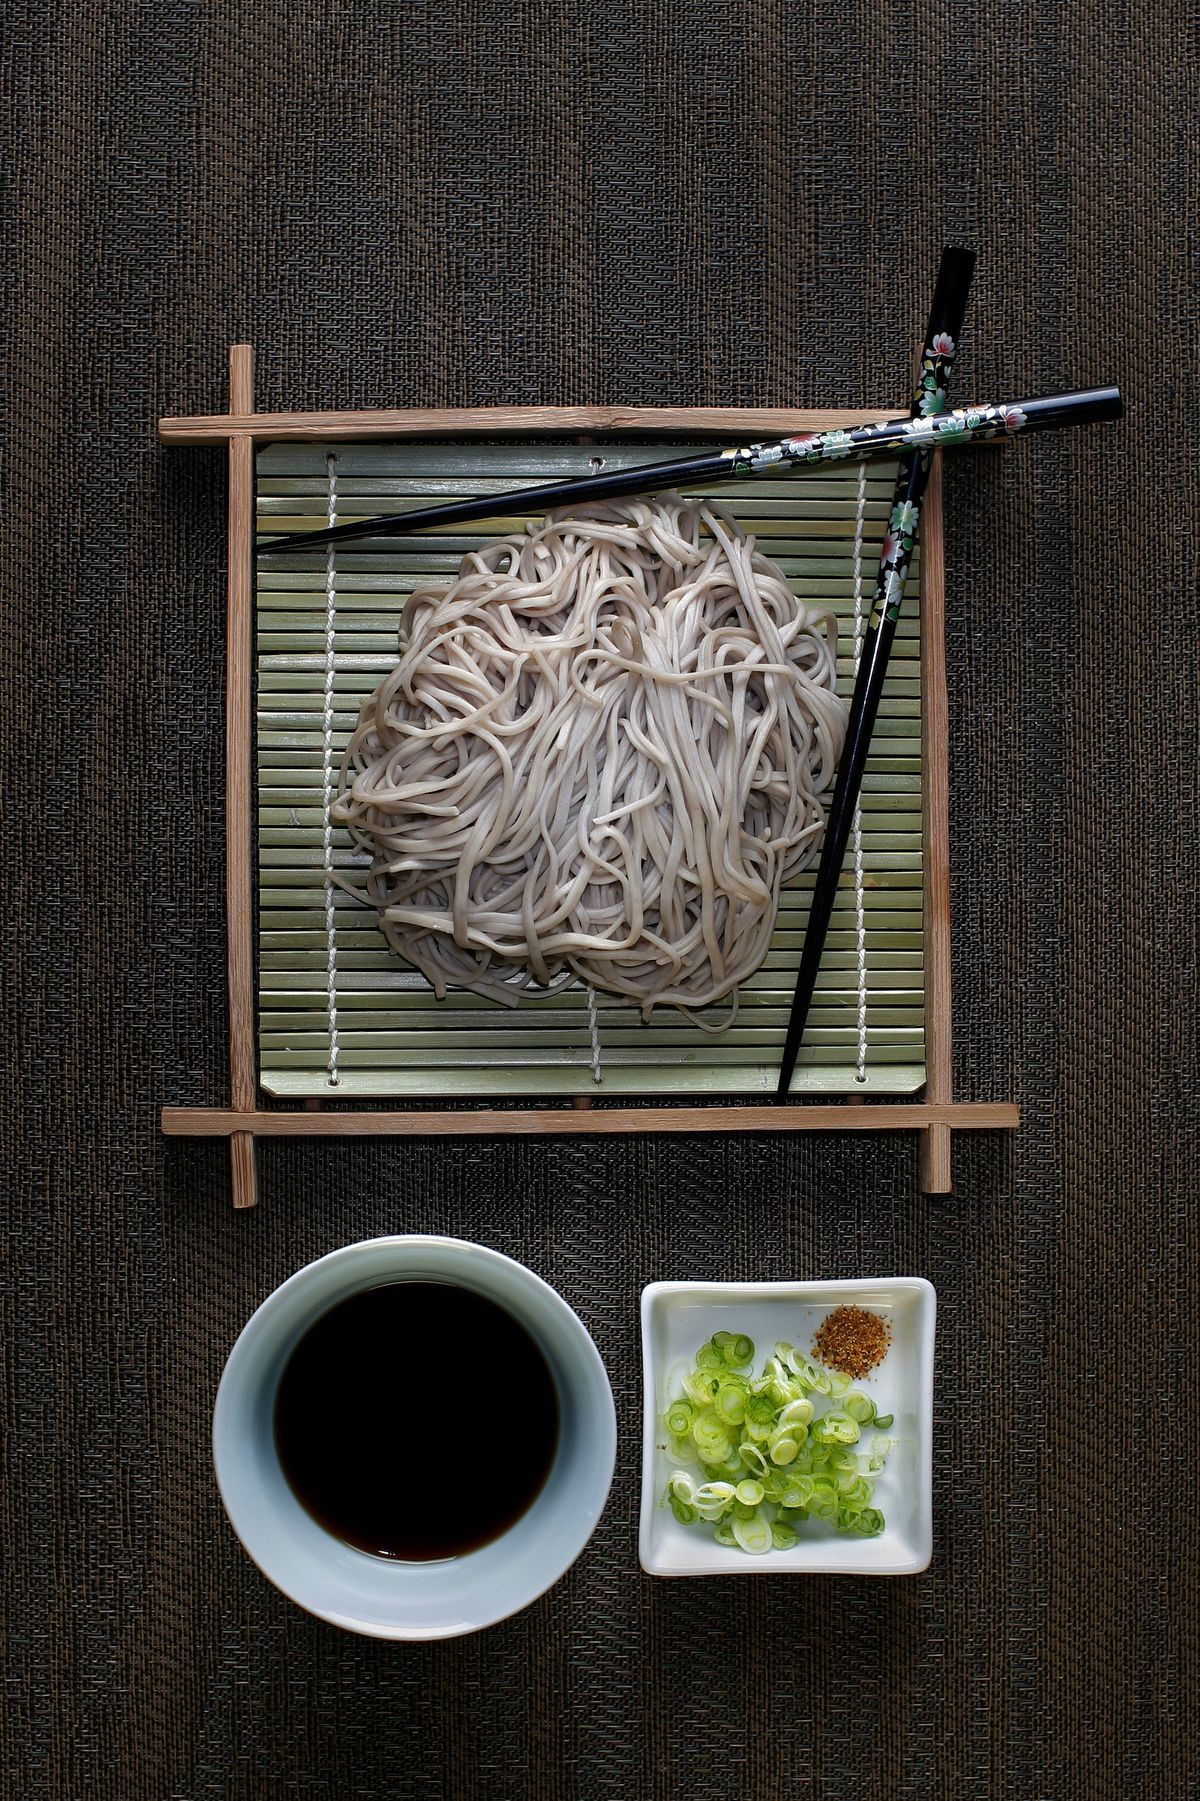 A meal of soba noodles, with tsuyu sauce, chopped green onion and shichimi powder, photographed in